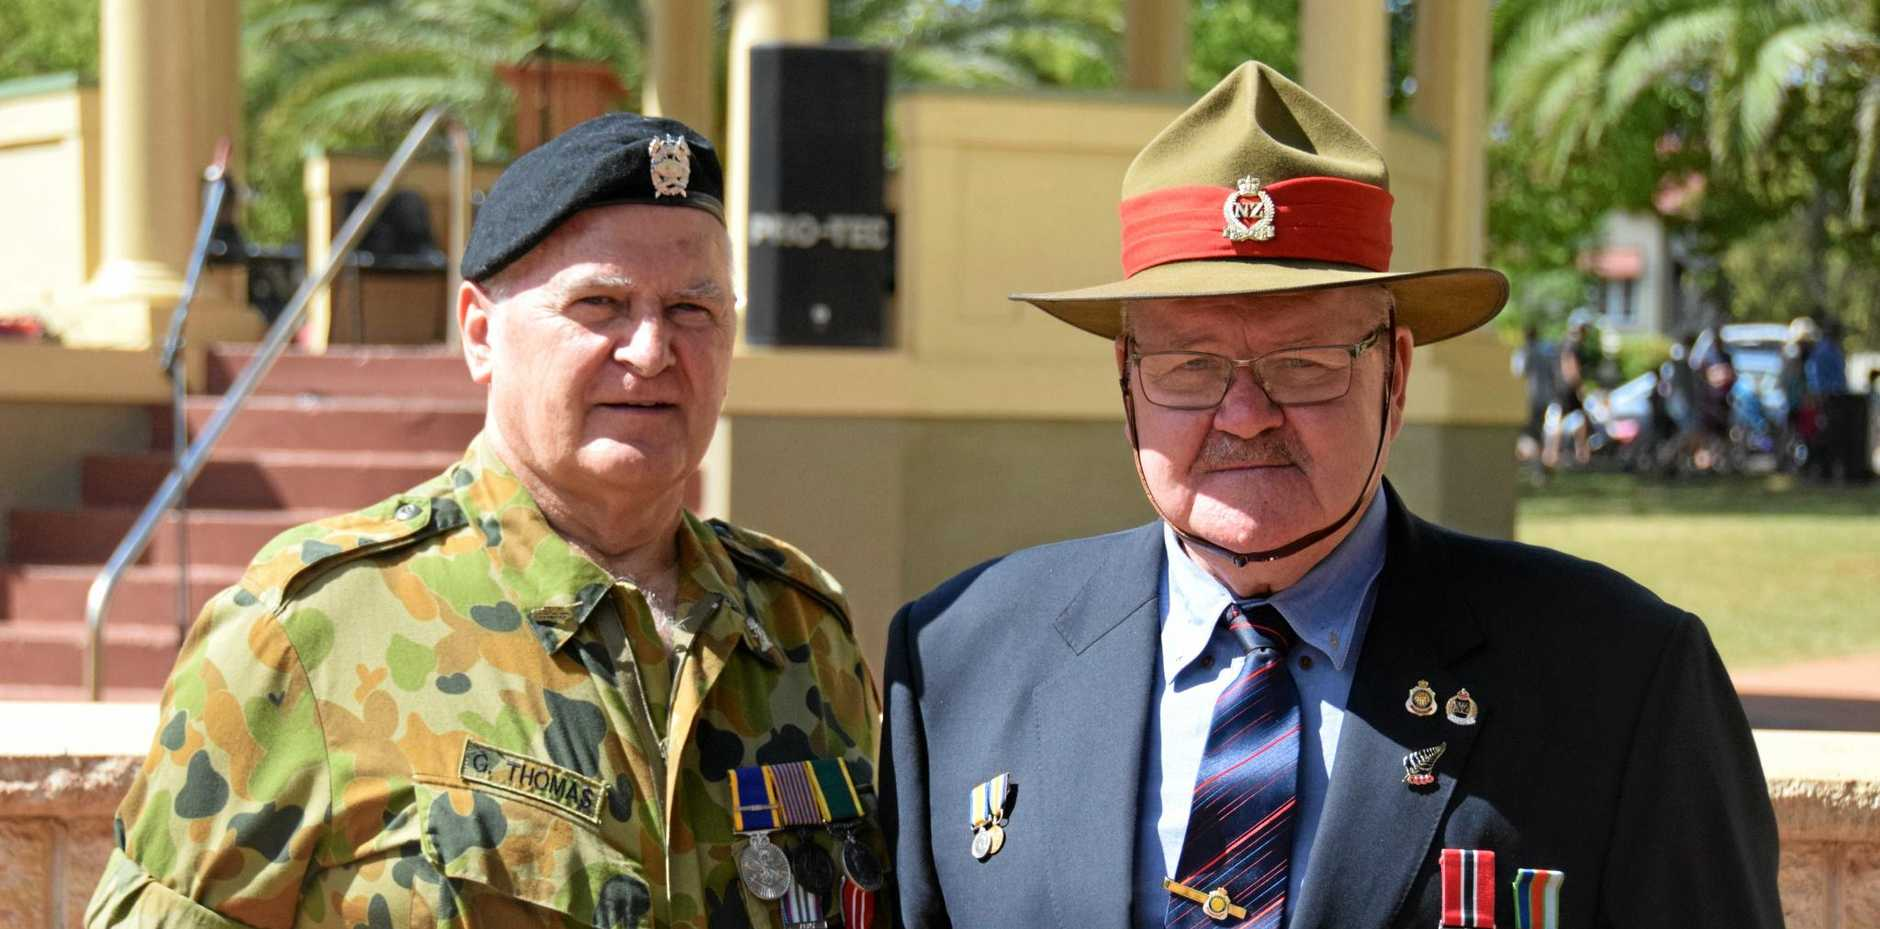 GOOD MATES: Nanango's Grahame Thomas and Kingaroy's Mick Bellam at Kingaroy's 2017 Anzac Day service.